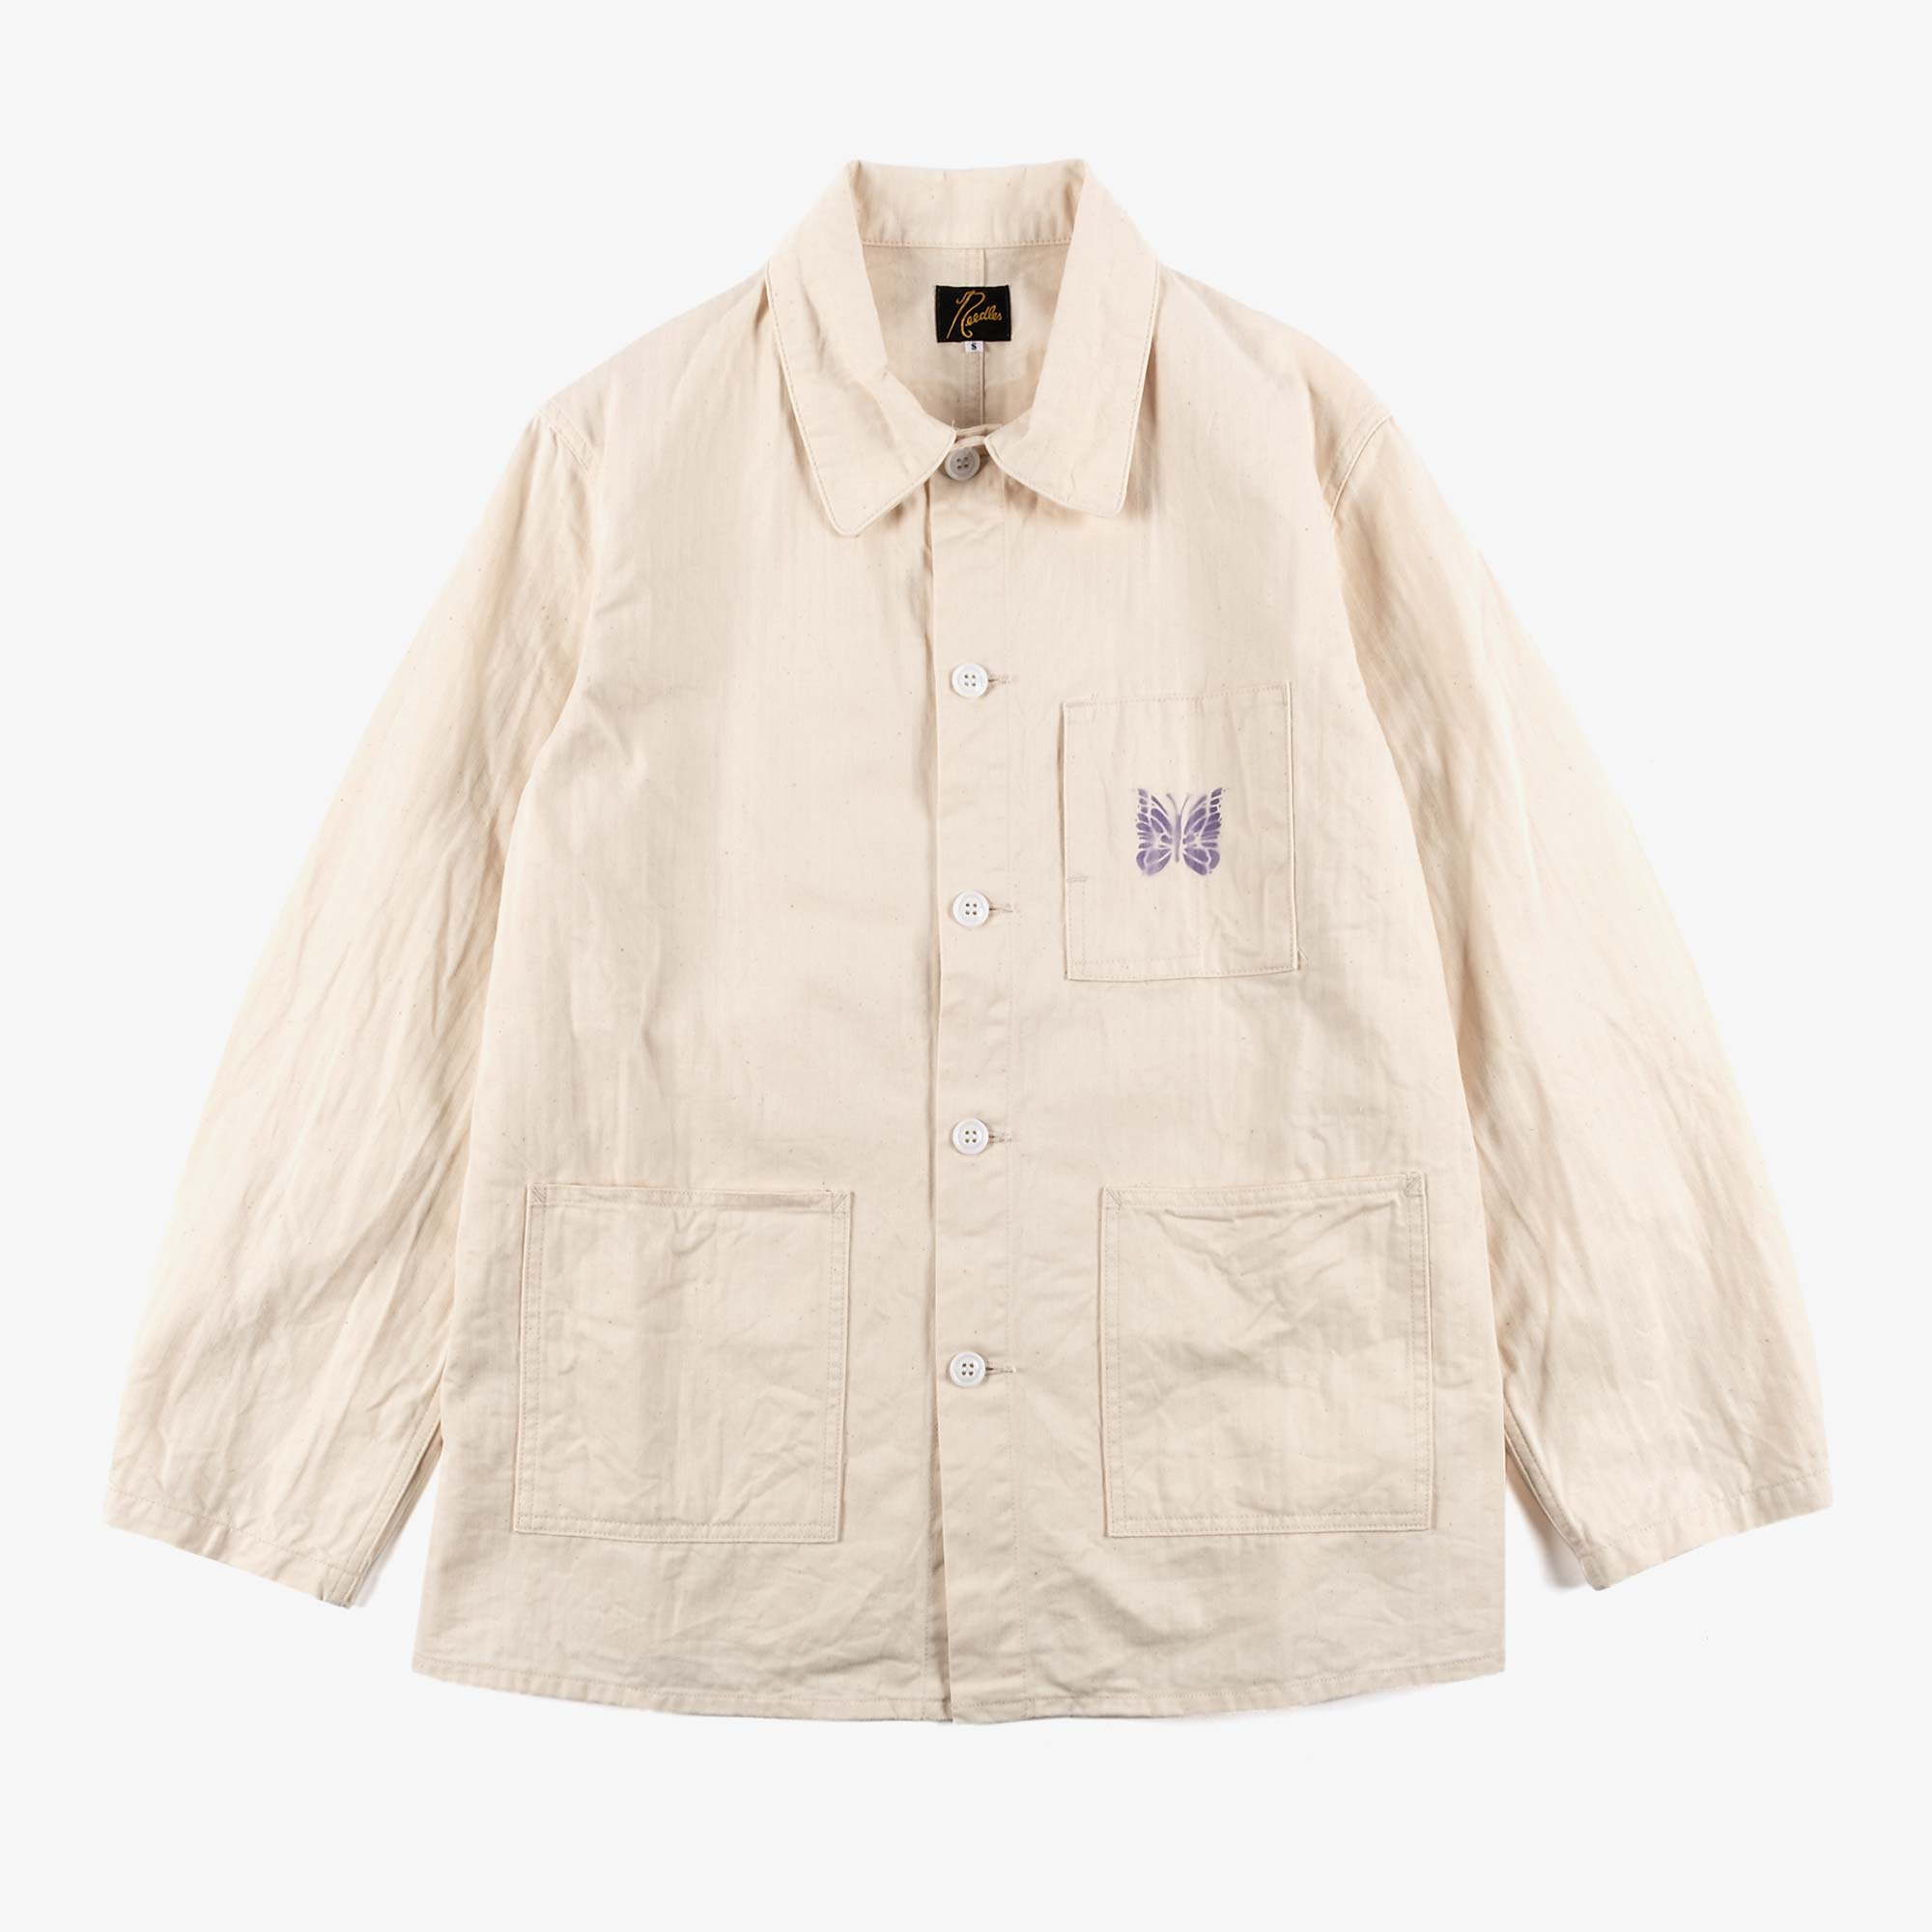 Needles Men's D.N. Coverall Jacket - Off White 1